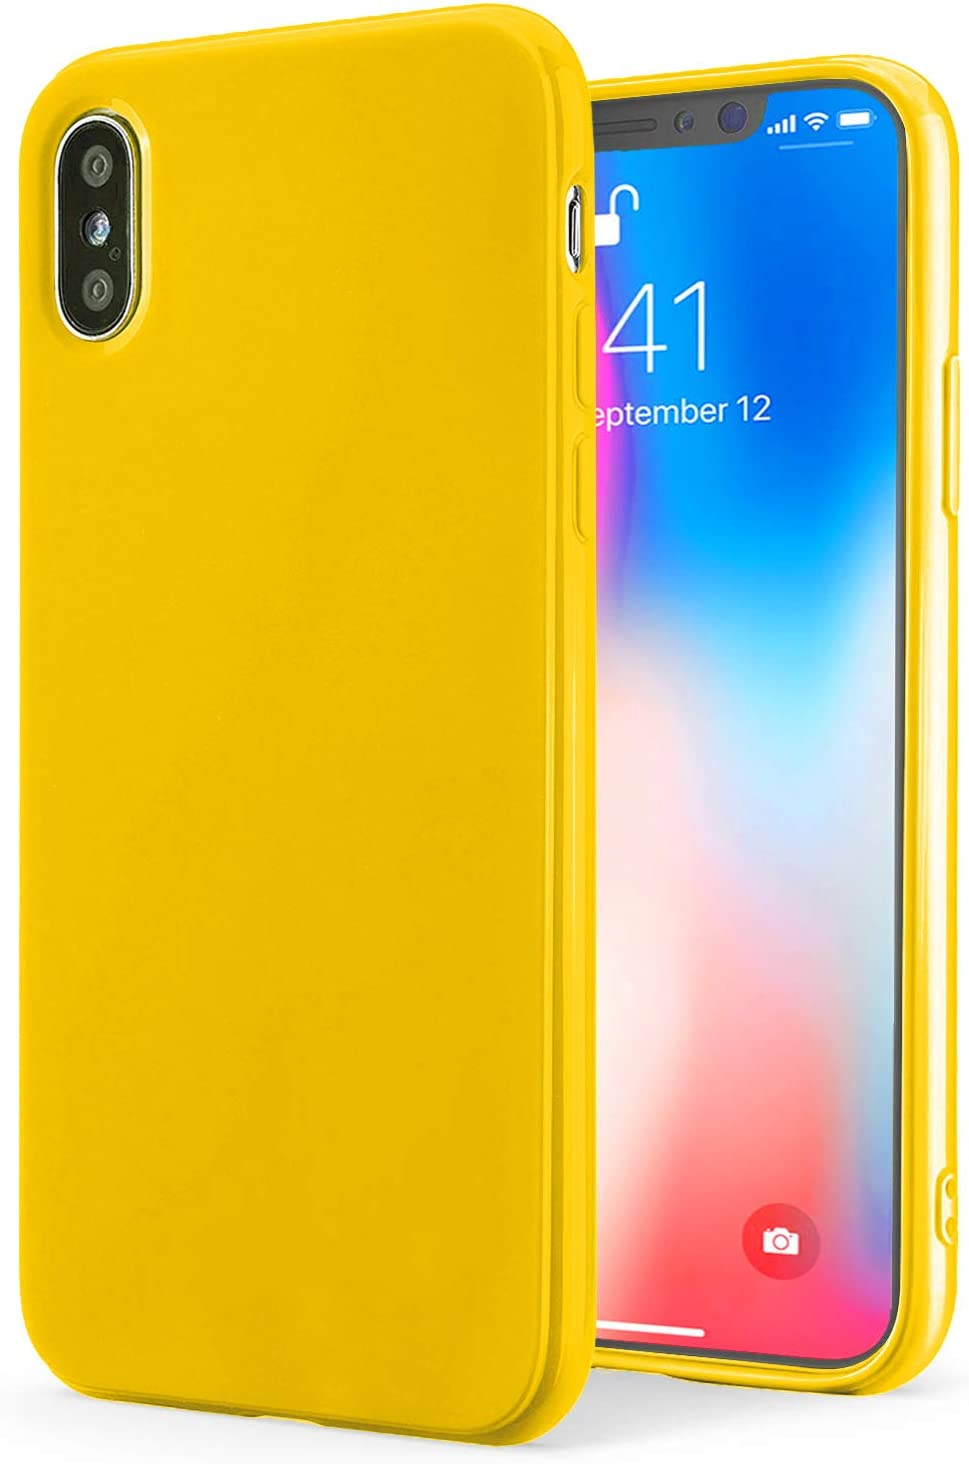 TENOC Phone Case Compatible for Apple iPhone Xs and iPhone X/10, Slim Fit Cases Soft TPU Bumper Protective Cover, Glossy Yellow